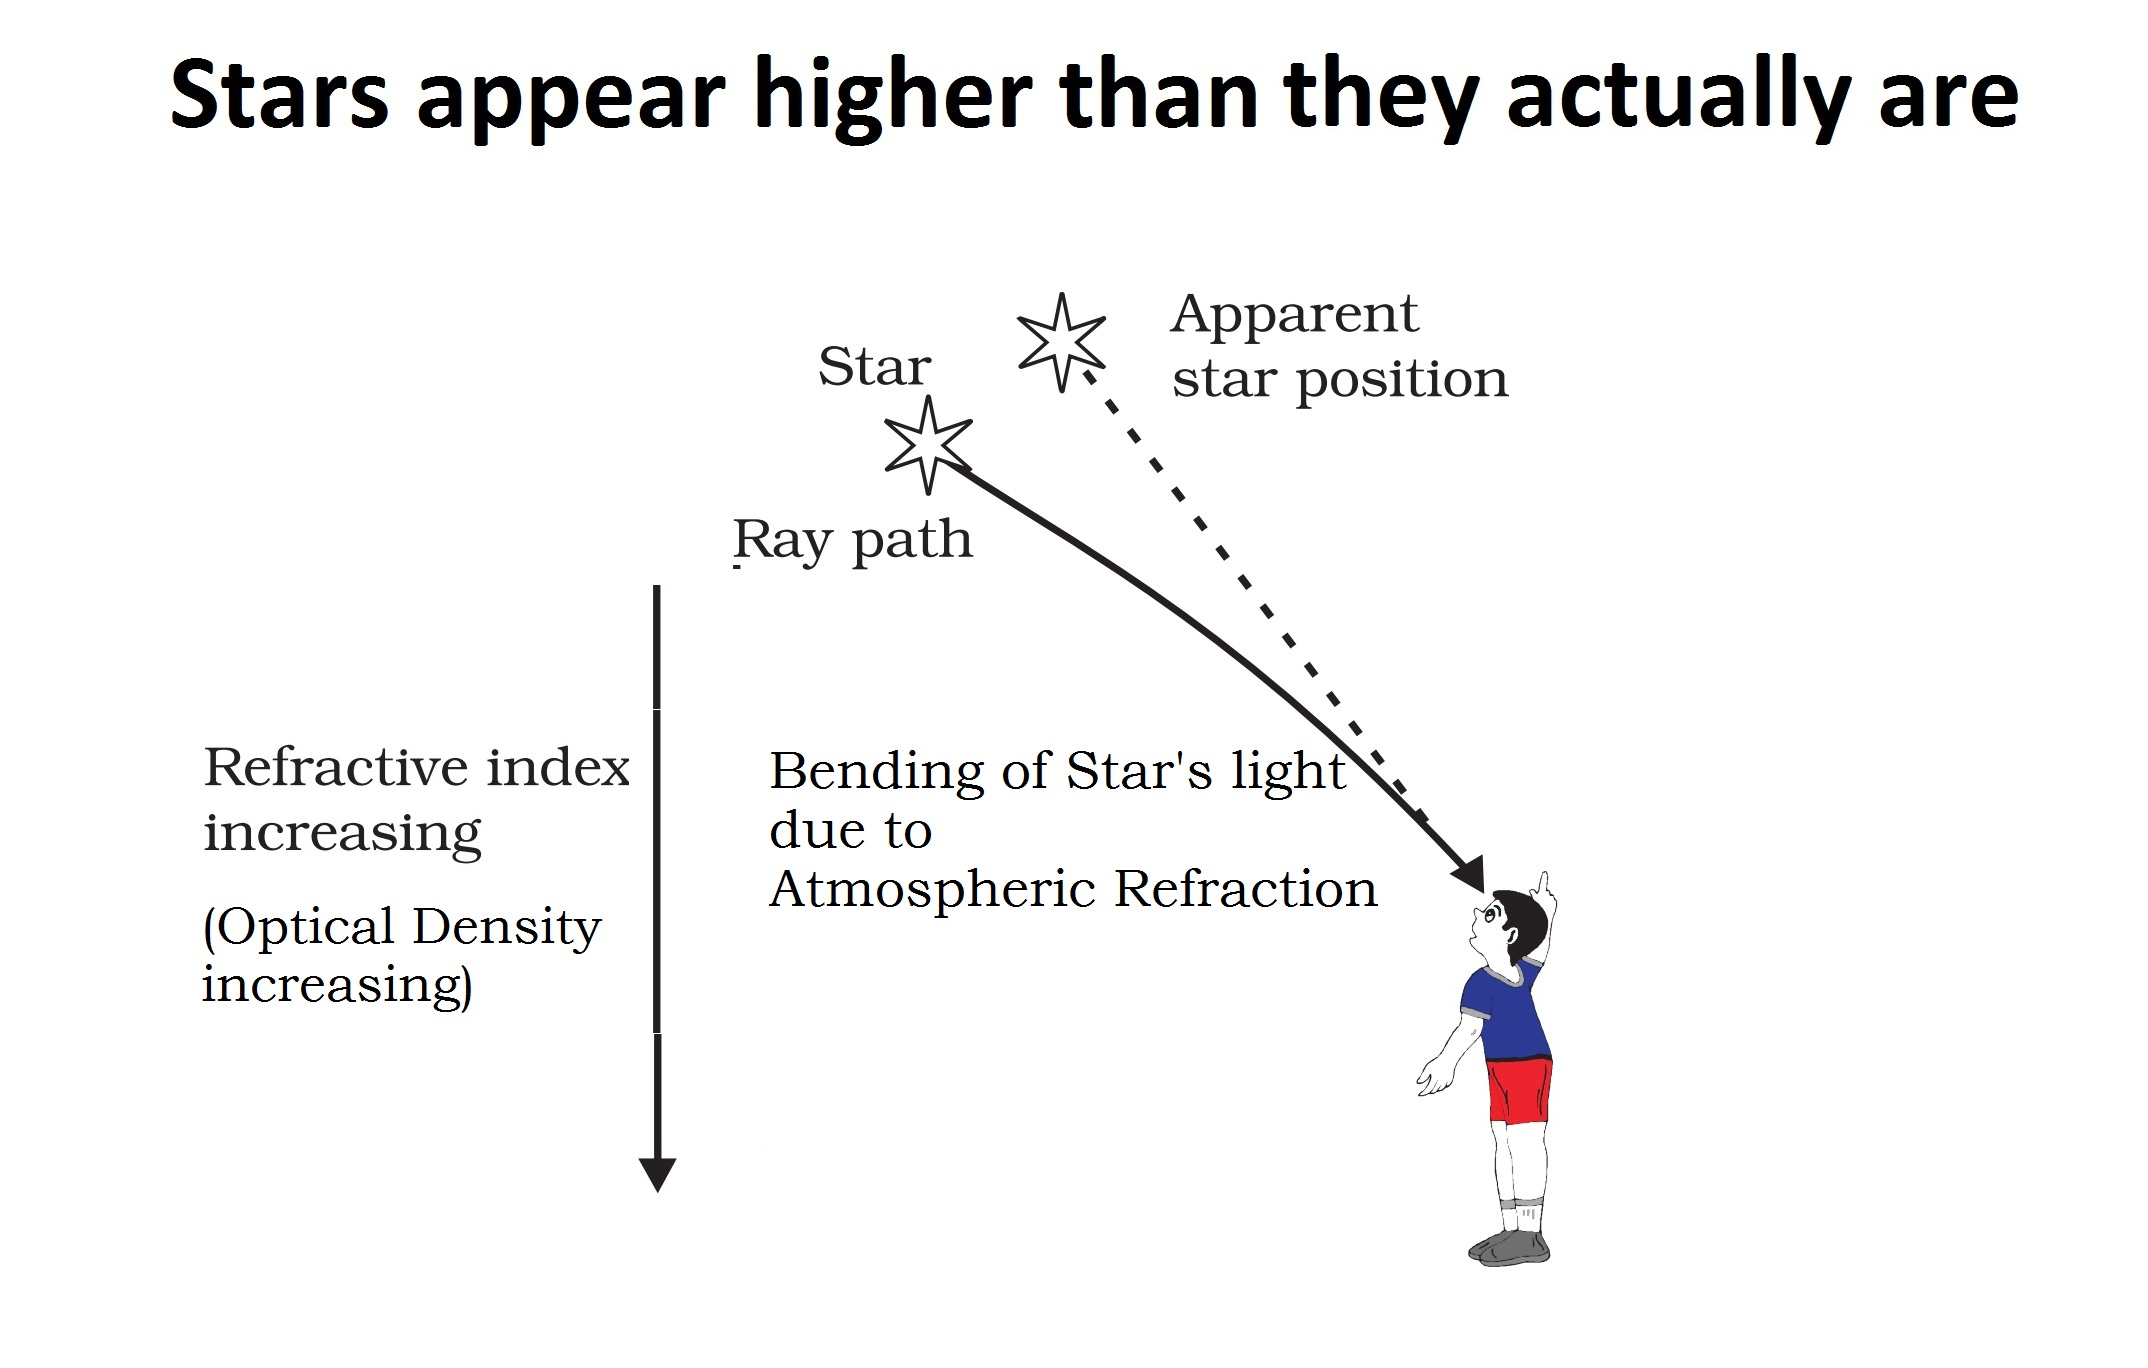 Stars appear higher than they actually are.jpg